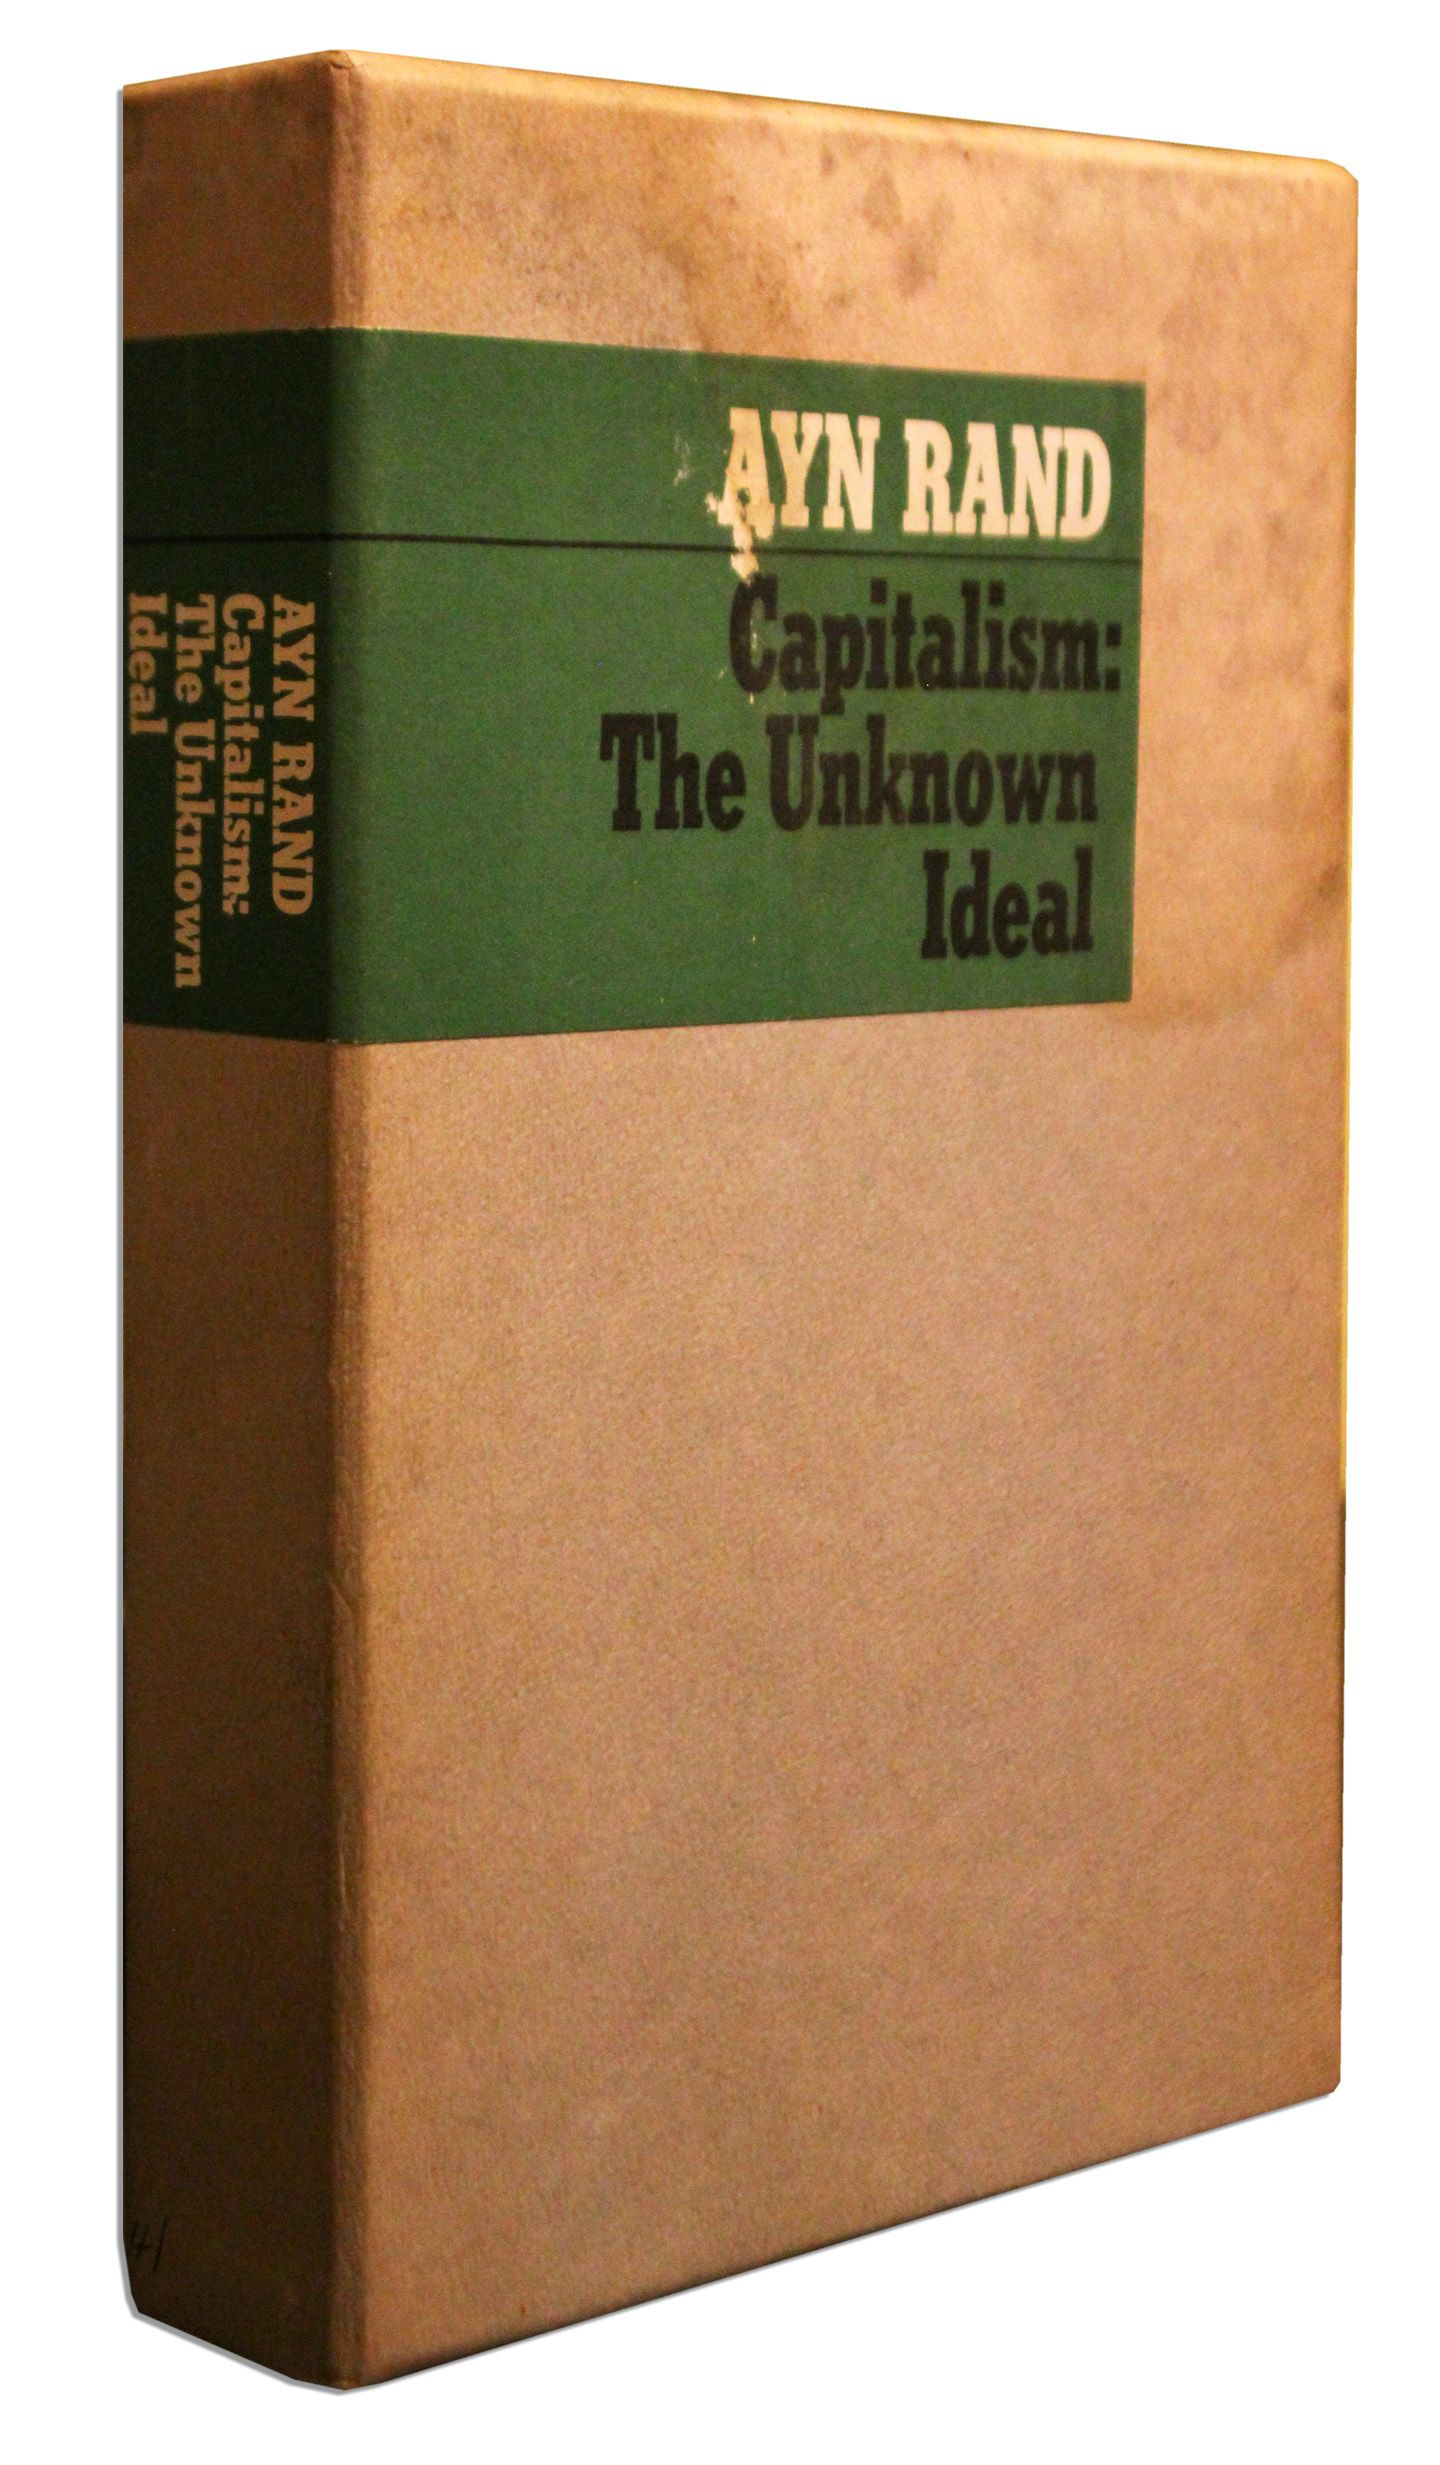 ayn rand essays on capitalism Capitalism: the unknown ideal ayn rand from: $379  the voice of reason:  essays in objectivist thought (the ayn rand library, vol v) ayn rand.